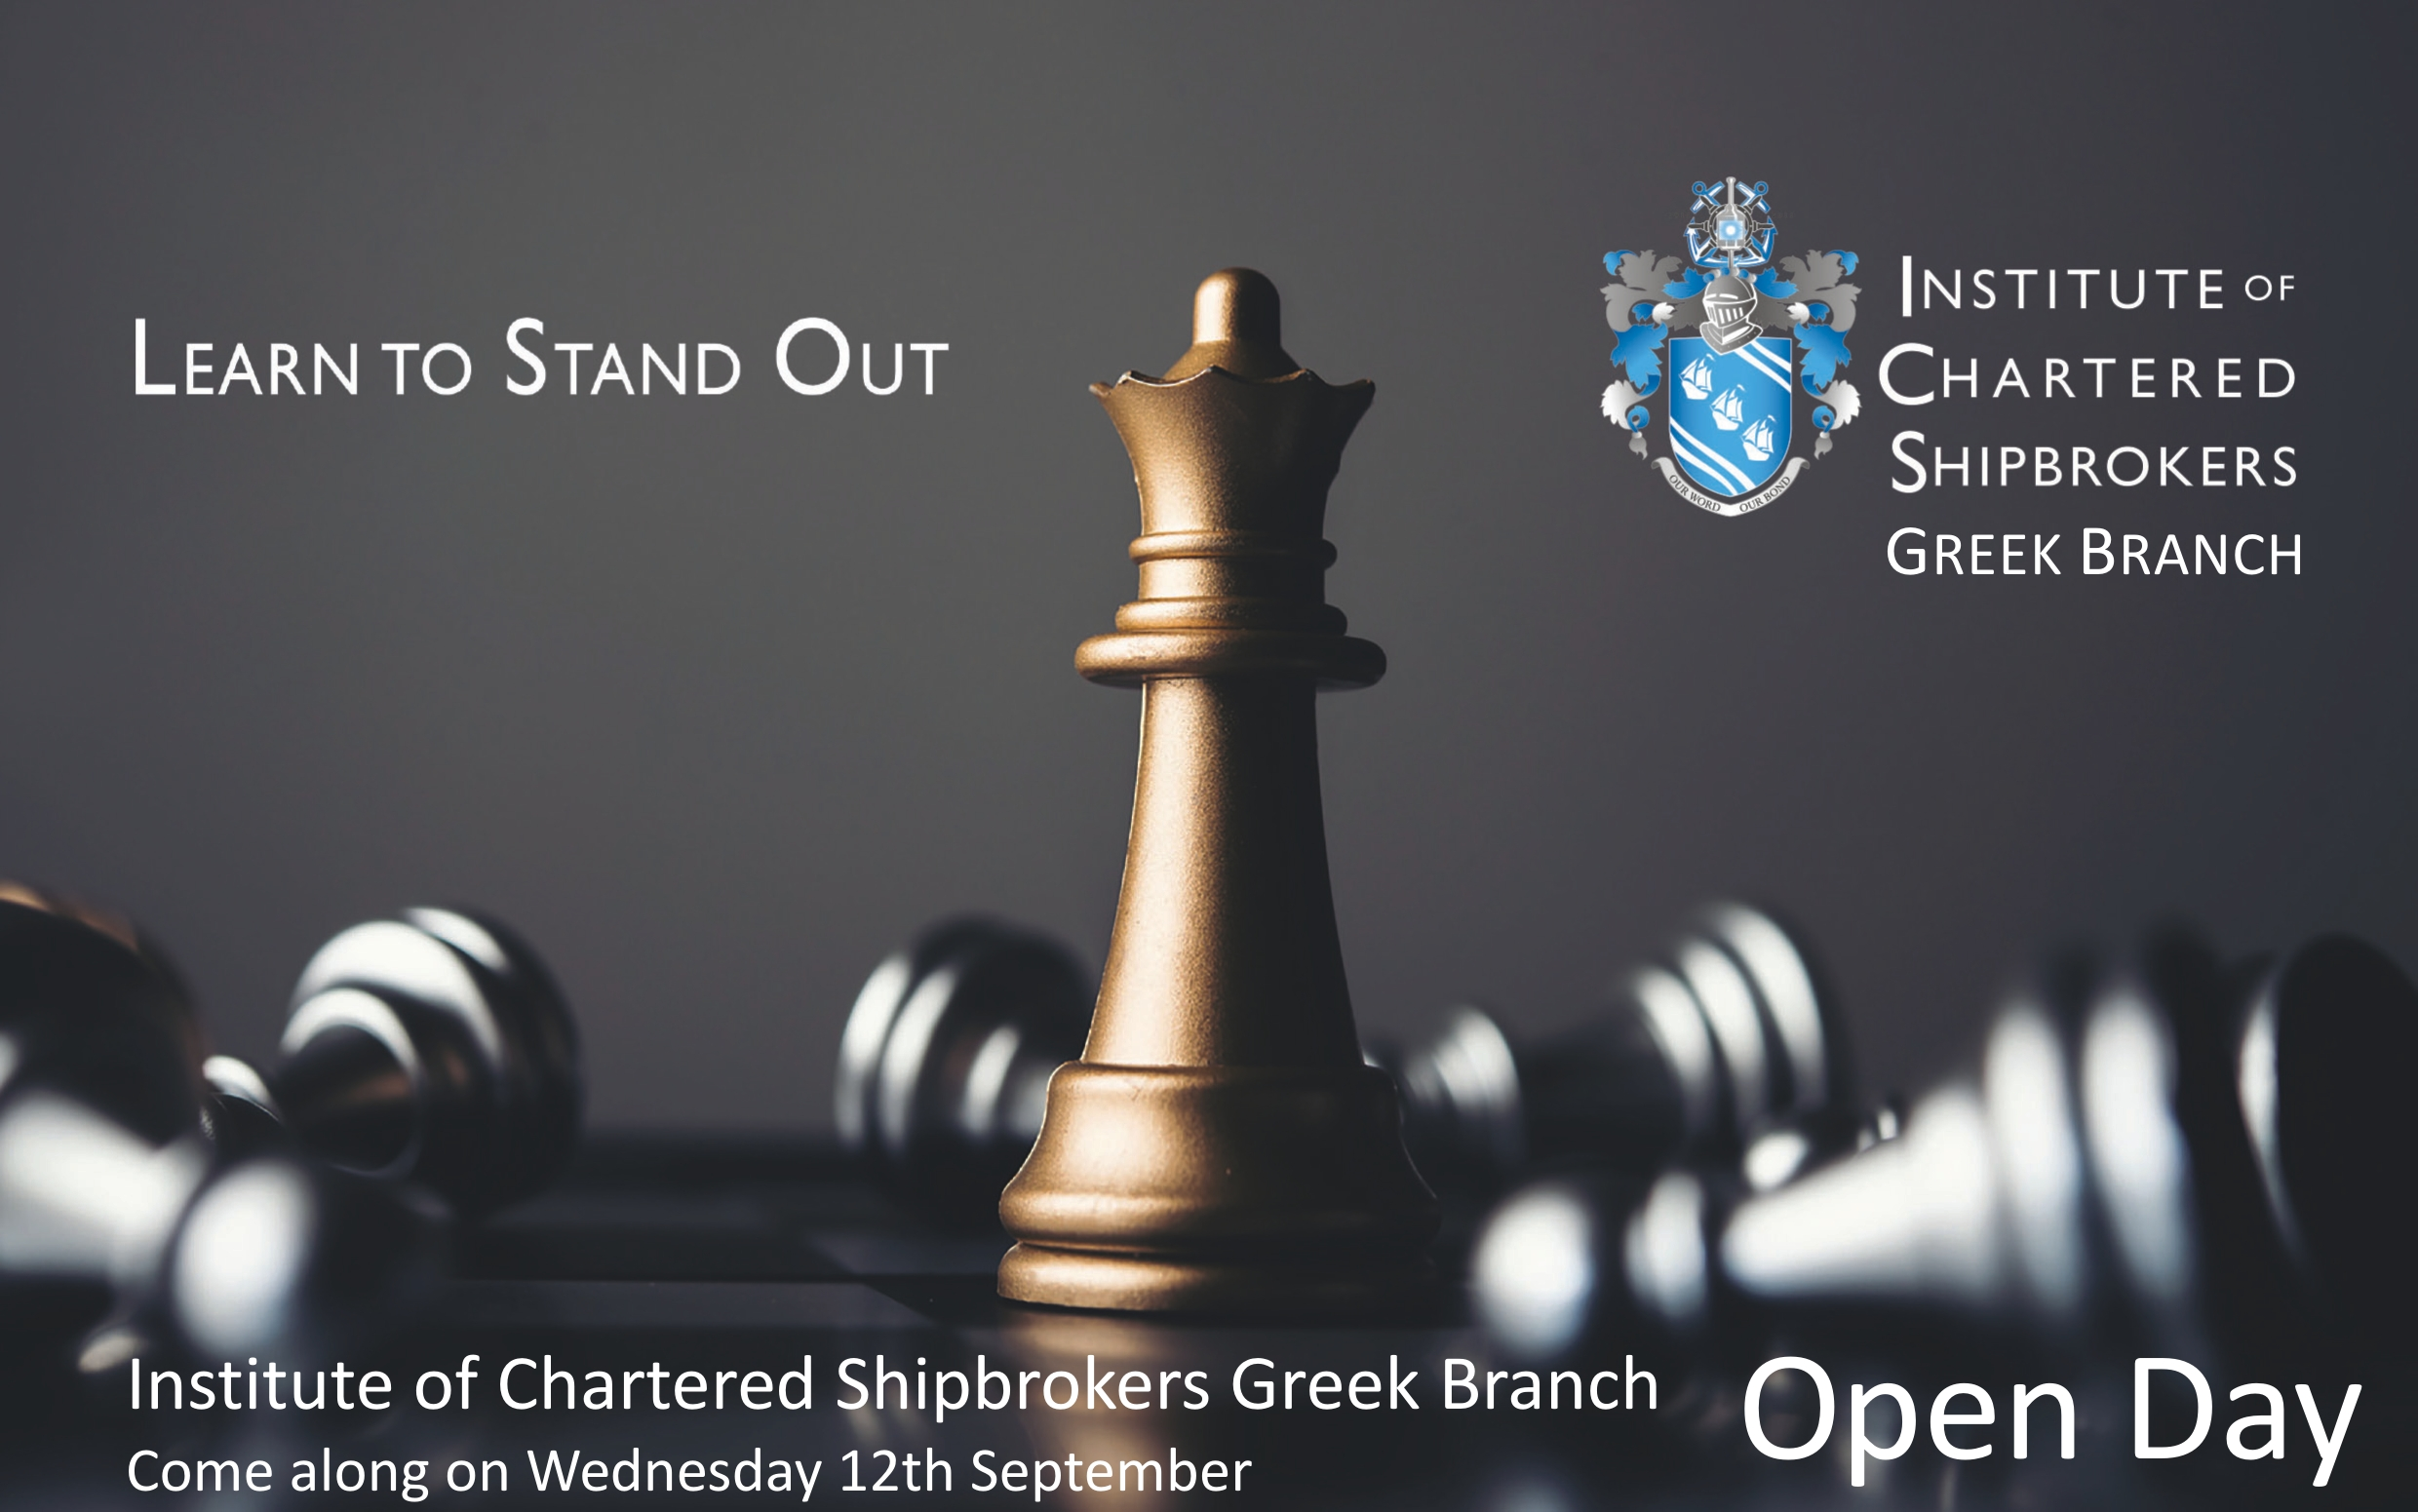 The HMC / ICS Greek Branch is opening its doors to potential students on  Wednesday, 12 September 2018 from 11:00 to 19:00.   Participants will have the chance to find out more about the     ICS Annual Professional Maritime Programme   &   ICS Examinations  , what it offers & its entry requirements.   Meet local tutors, discuss with them about the   ICS Syllabus     and finally find and out about the   ICS Membership   the unique hallmark of professionalism in the international shipping industry.   Give your career a lift by studying for recognized qualifications with the industry's leading professional body.   - Comprehensive syllabus: covers all major disciplines in commercial shipping - Flexible study options: plan study around work and family commitments - Recognized: become certified in your chosen field with onward pathways toward chartered status - Relevant: led by practitioners for practitioners - International: supported by our international network of branches, teaching centers and members - Advance: members of the Institute enjoy enhanced careers in the shipping industry   Who may attend:    - Graduates  and  Professionals  of finance, management, legal and engineering background who wish to enter into the shipping industry.  - Shipping Professionals  – shipbrokers, operators, charterers, maritime lawyers, agents, financiers- who wish to upgrade their theoretical and practical background and certify their expertise.   - Officers  of the  Merchant Marine  – willing to enhance their sea-going experience and practice with the commercial knowledge.    Venue : HMC Premises,1 Platonos str. & Sotiros Dios Str., Piraeus, 18535   Hours : 11:00-19:00   Registration:  In order to register at the Open Day, please click  here .